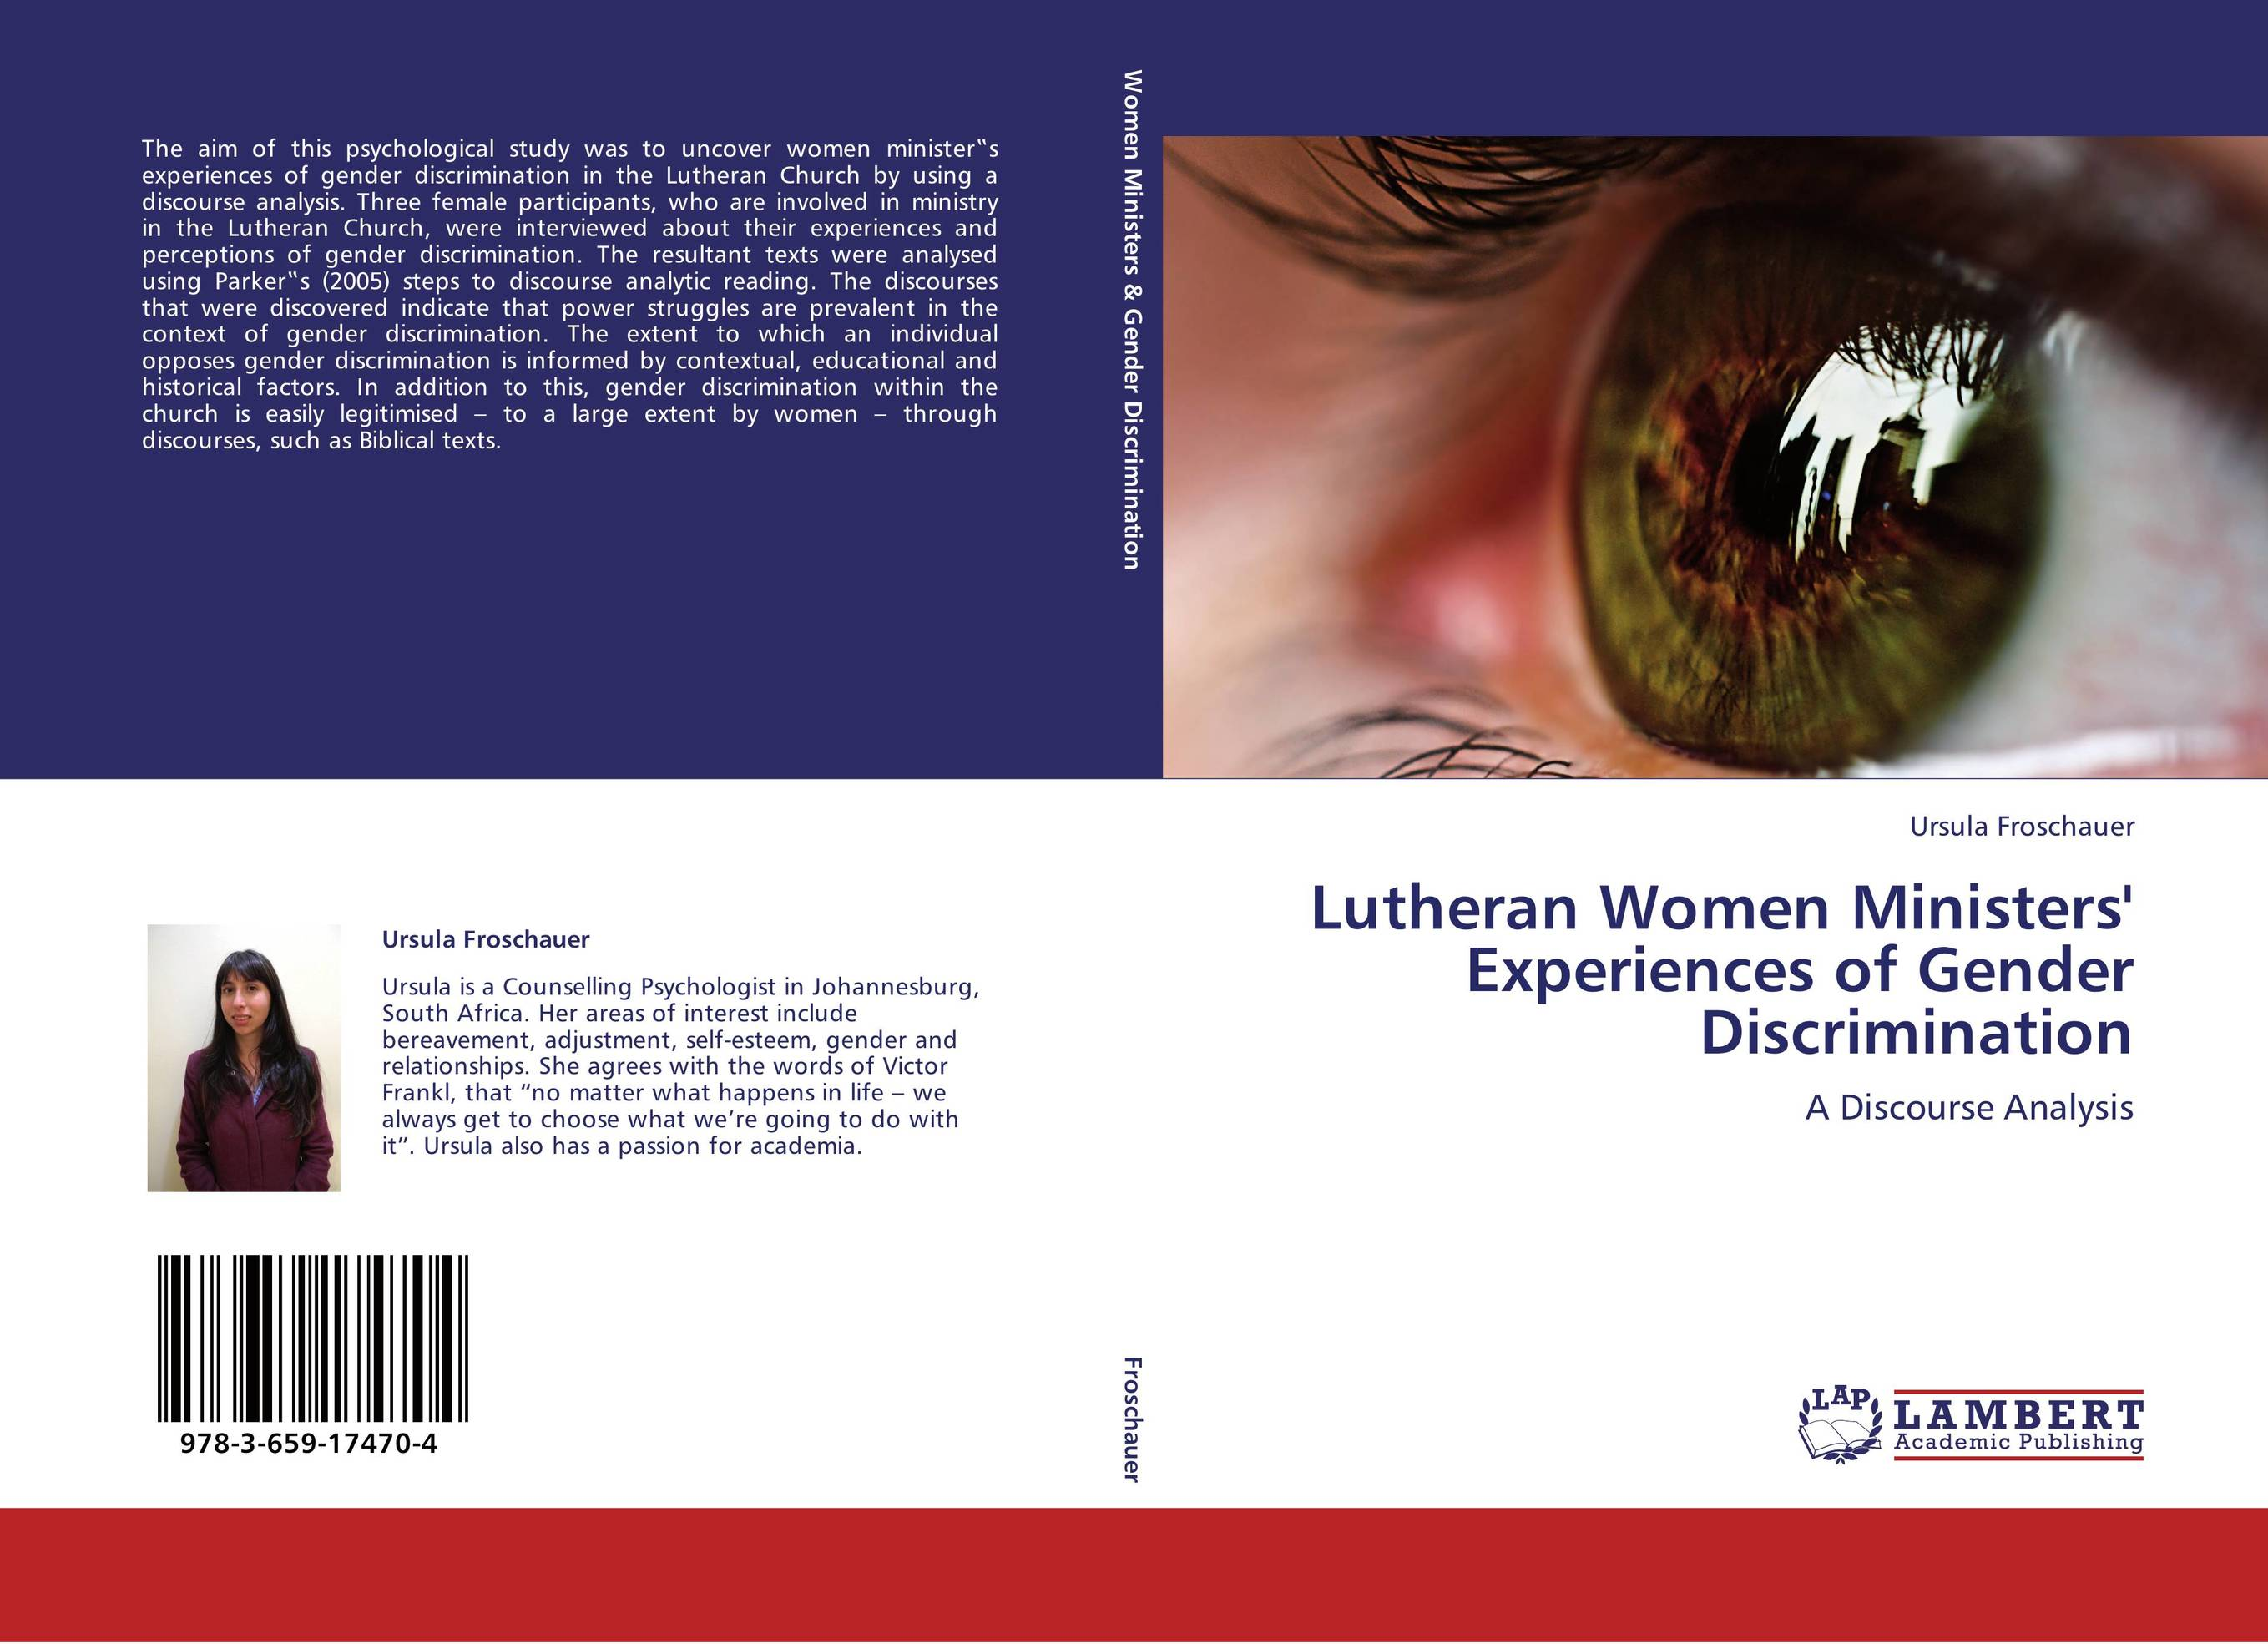 analysis on gender discrimination When gender discrimination happens in the workplace, the discriminated party never reaches the level needed to have the control and autonomy at work when a group, say women, feels as if they are being discriminated against just because of their sex, they are more likely to leave the company.